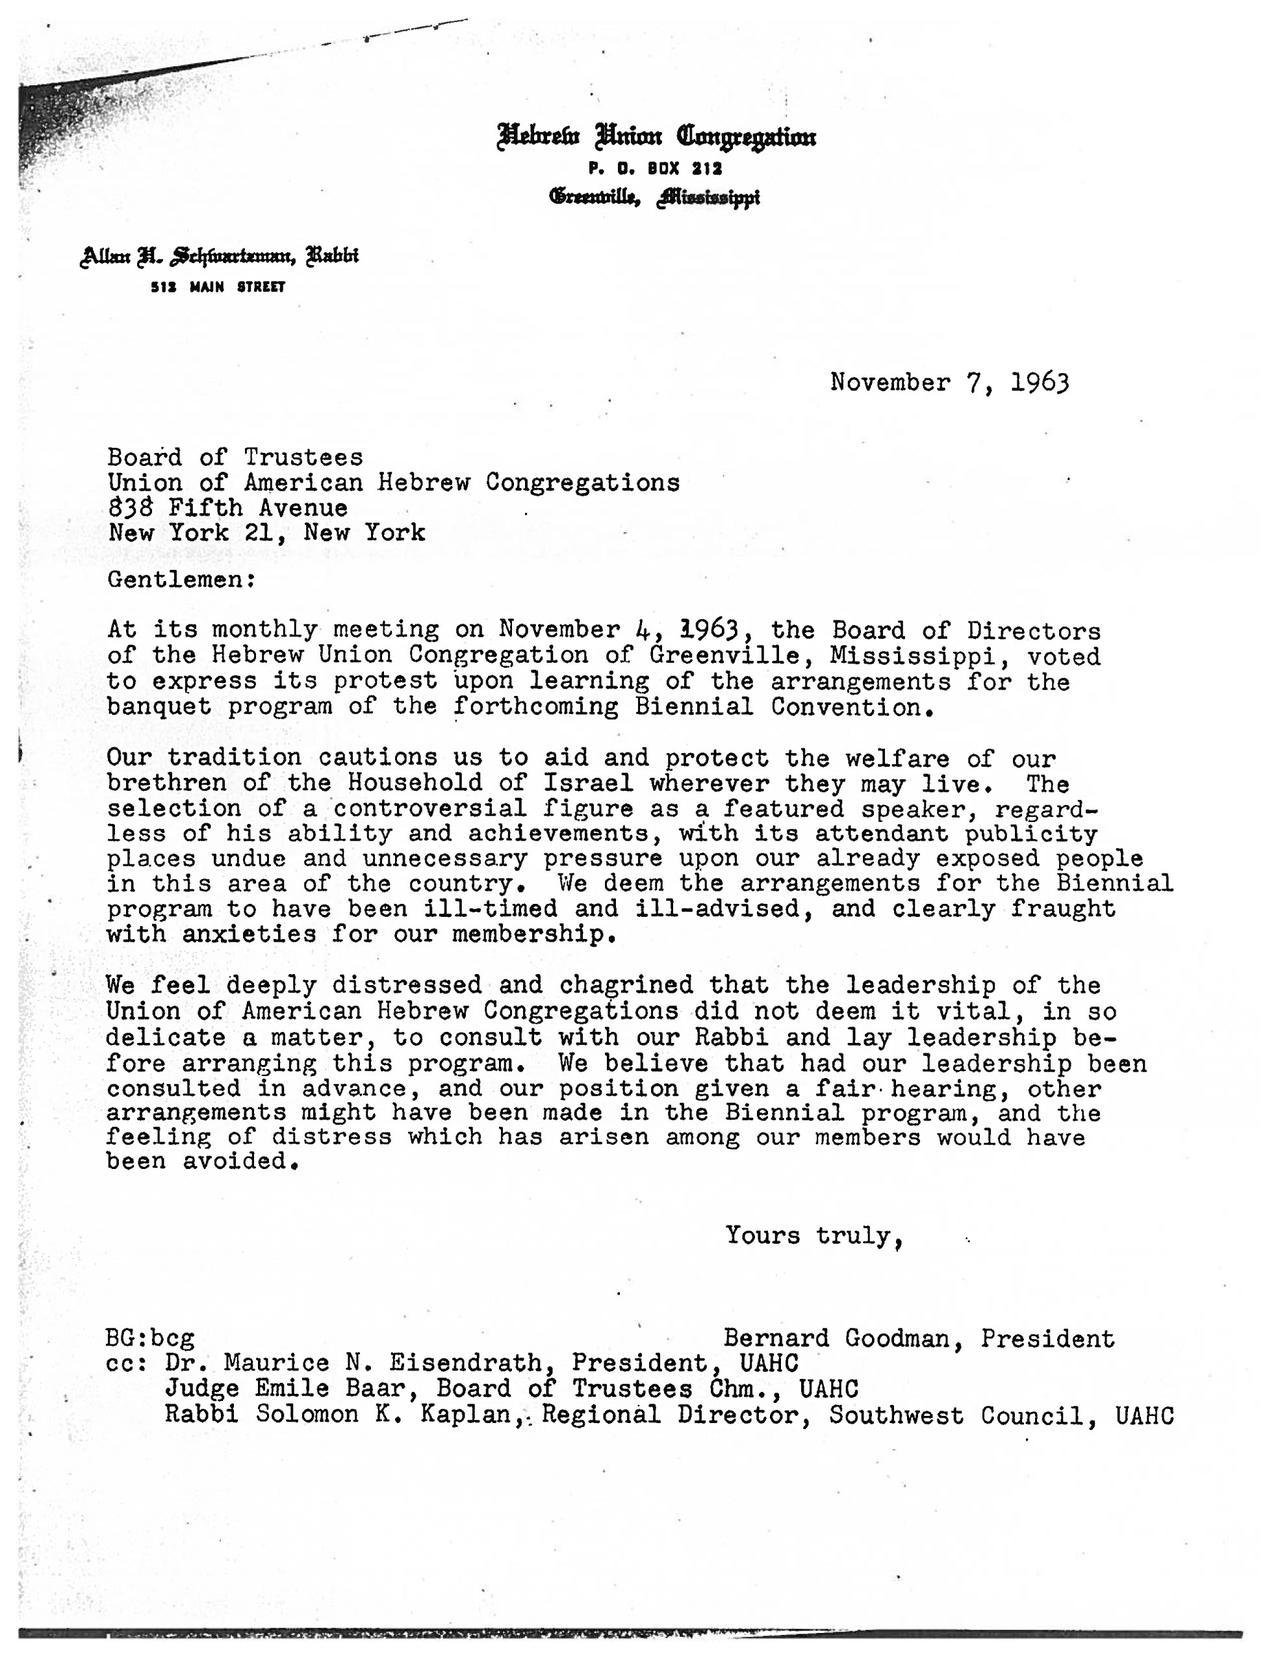 Letter from Hebrew Union Congregation to the Union of American Hebrew Congregations, November 7, 1963